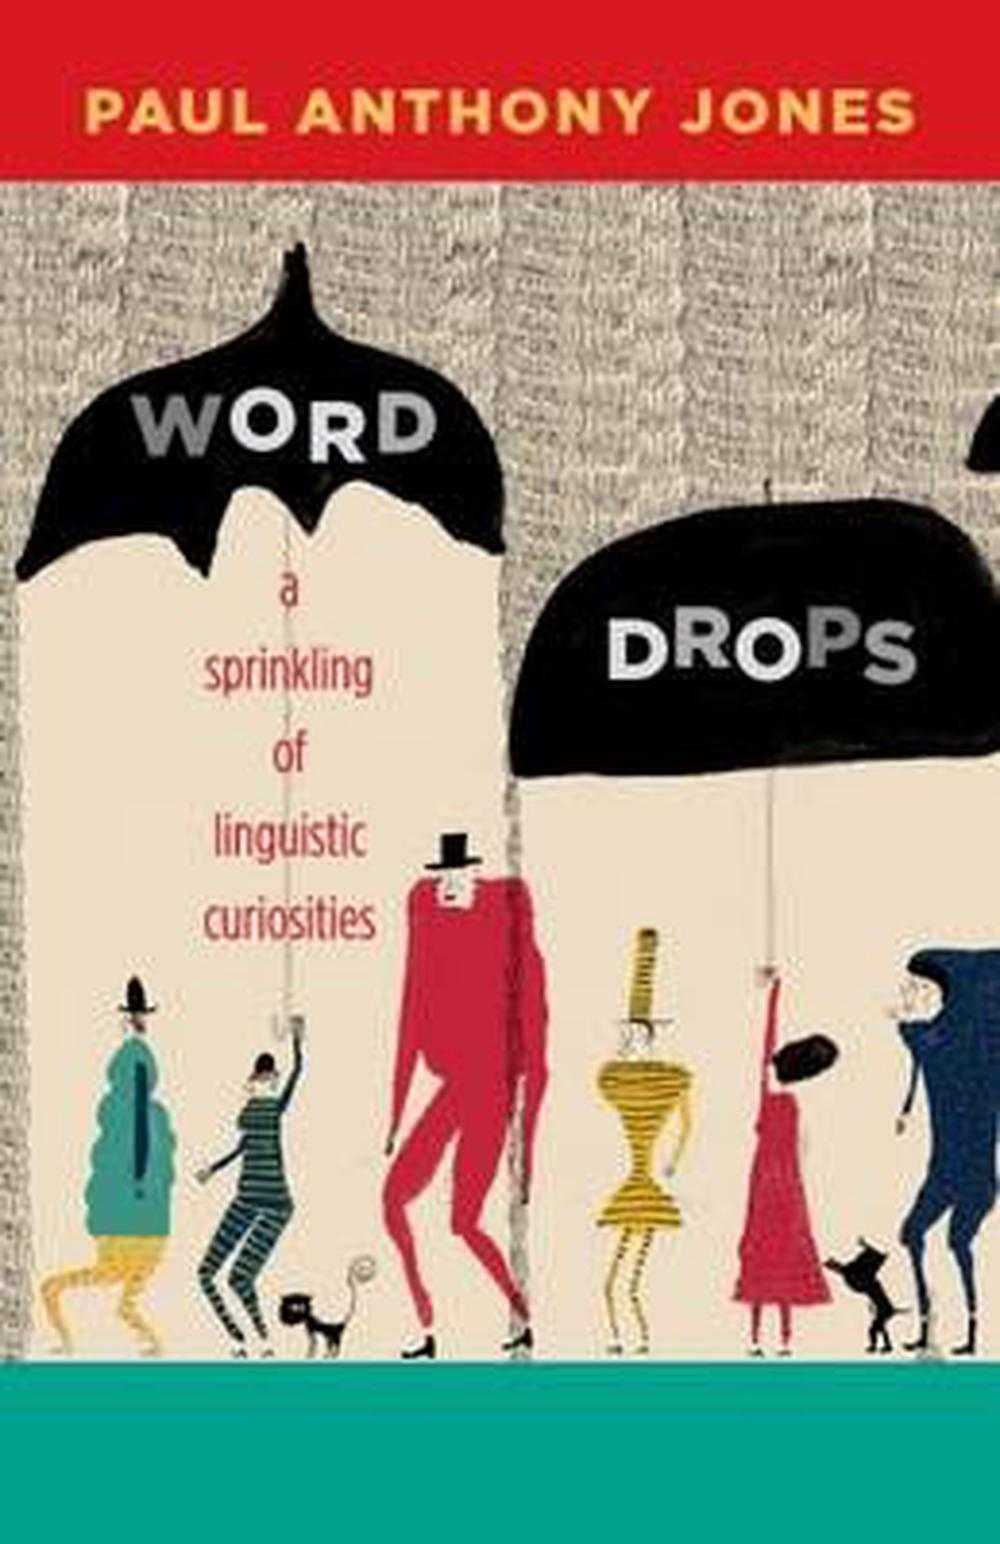 Word Drops: A Sprinkling of Linguistic Curiosities